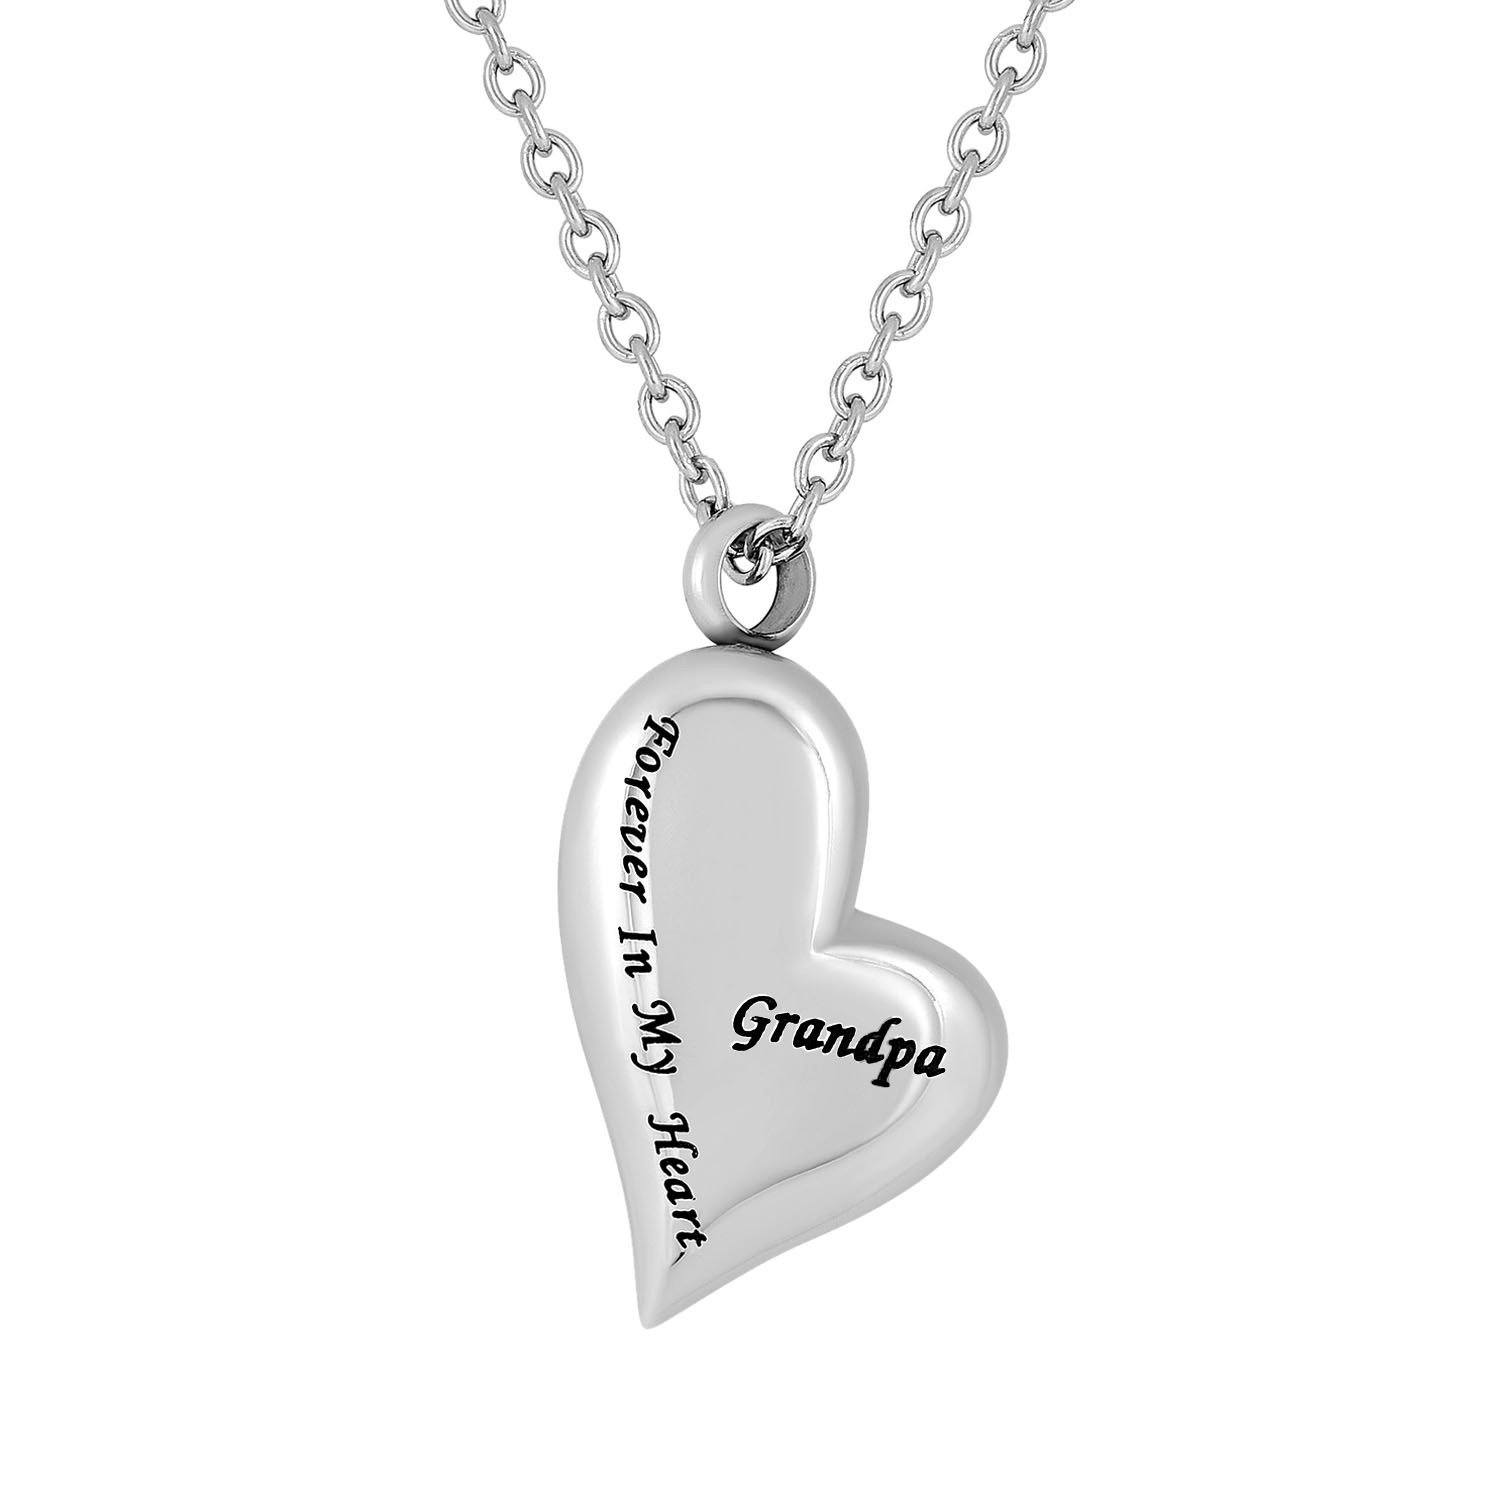 Cremation Jewelry Necklace for Ashes - Grandpa Forever In My Heart